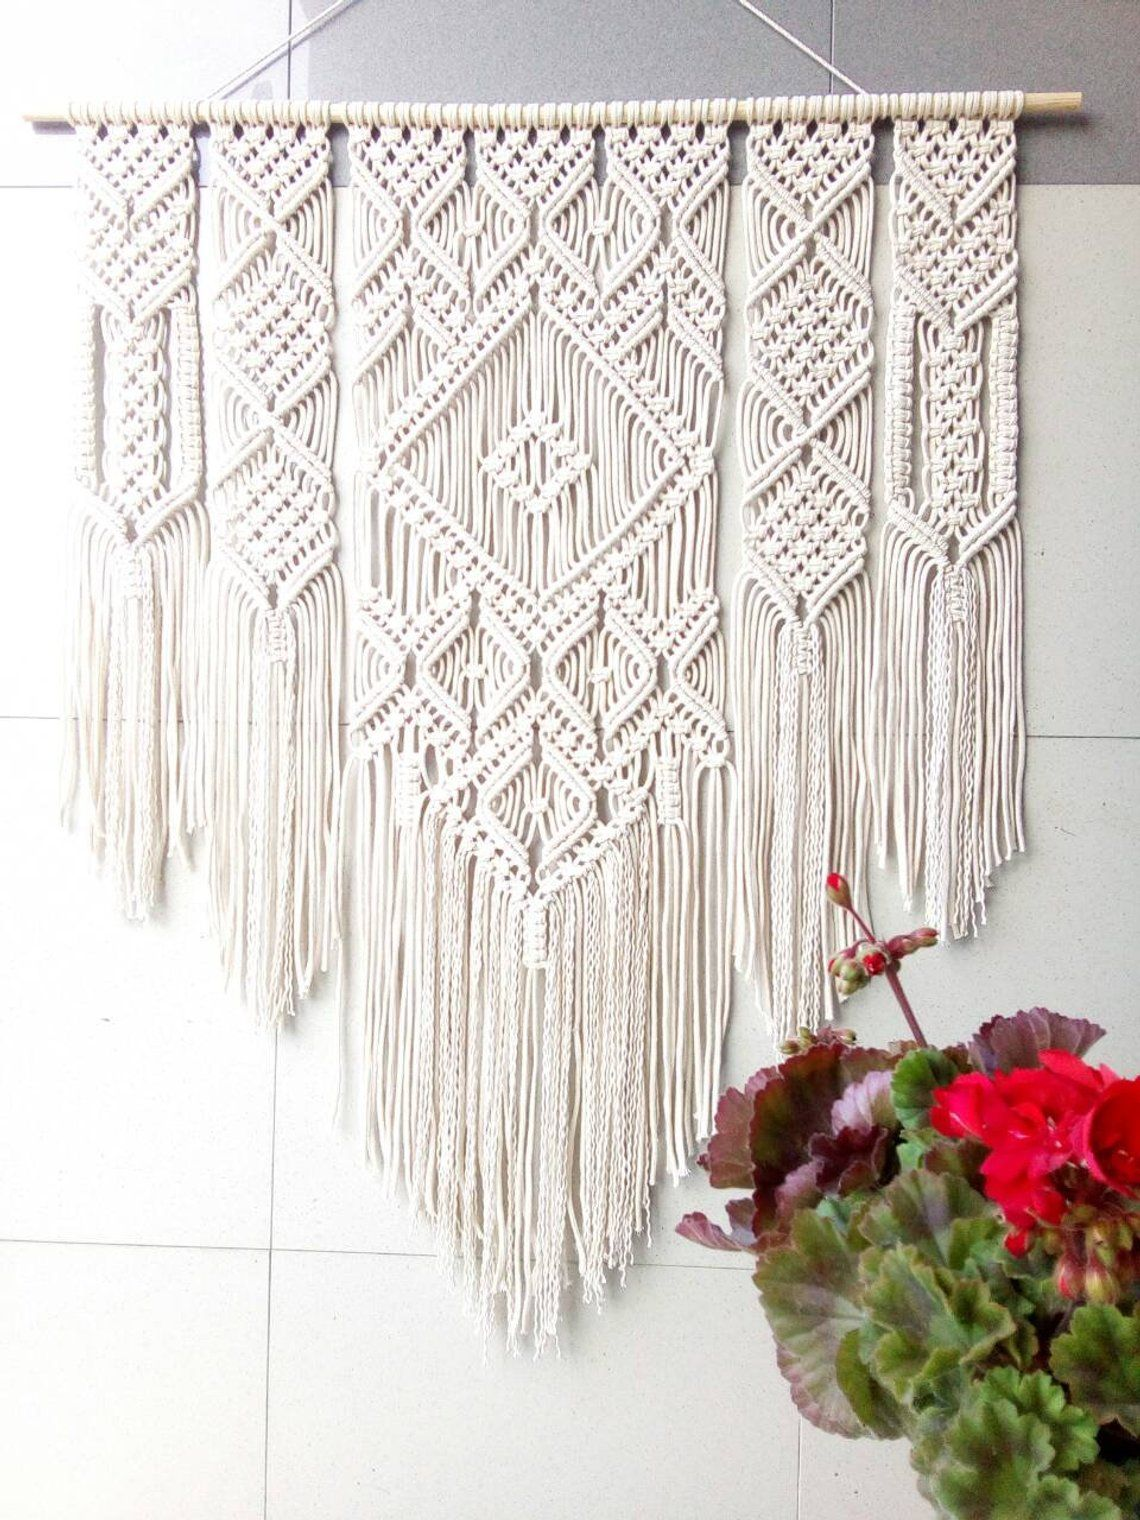 Large Macrame Wall Tapestry Wall Hanging Macrame Wall Art Etsy Macrame Headboard Macrame Wall Art Macrame Wall Hanging Patterns